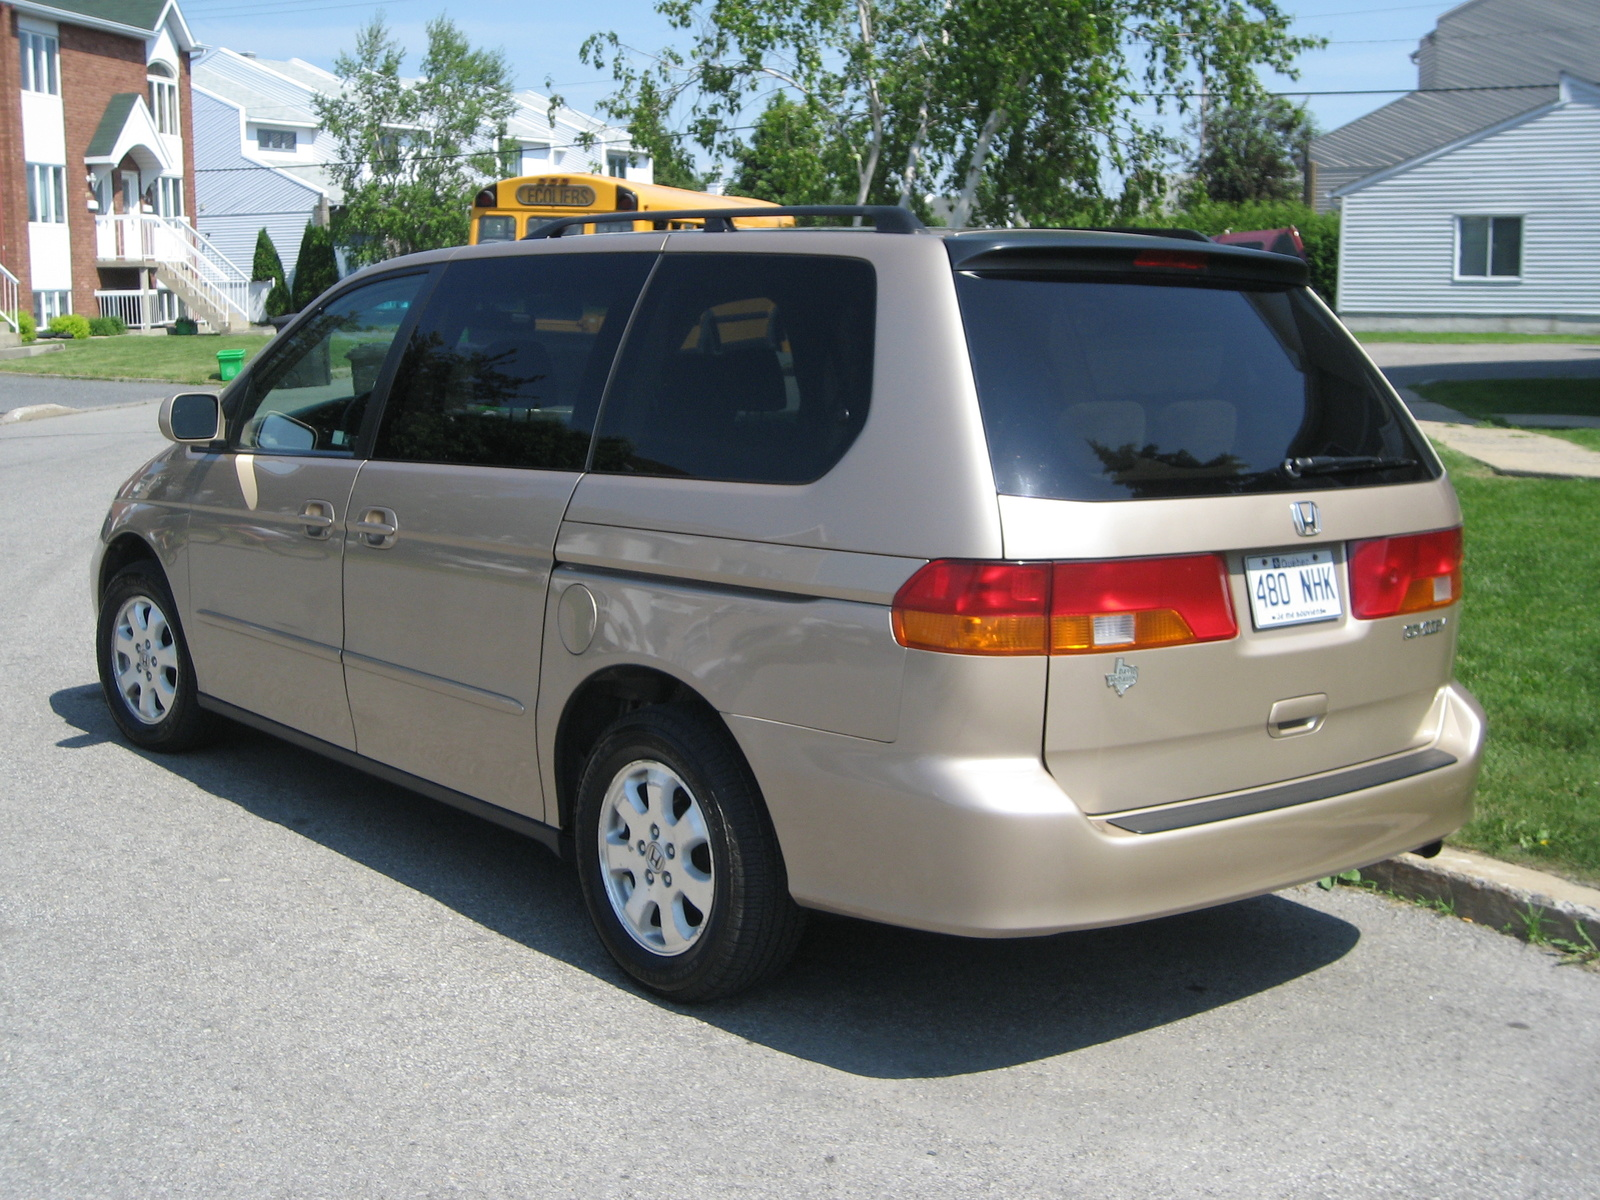 Town And Country Toyota >> 2002 Honda Odyssey - Pictures - CarGurus